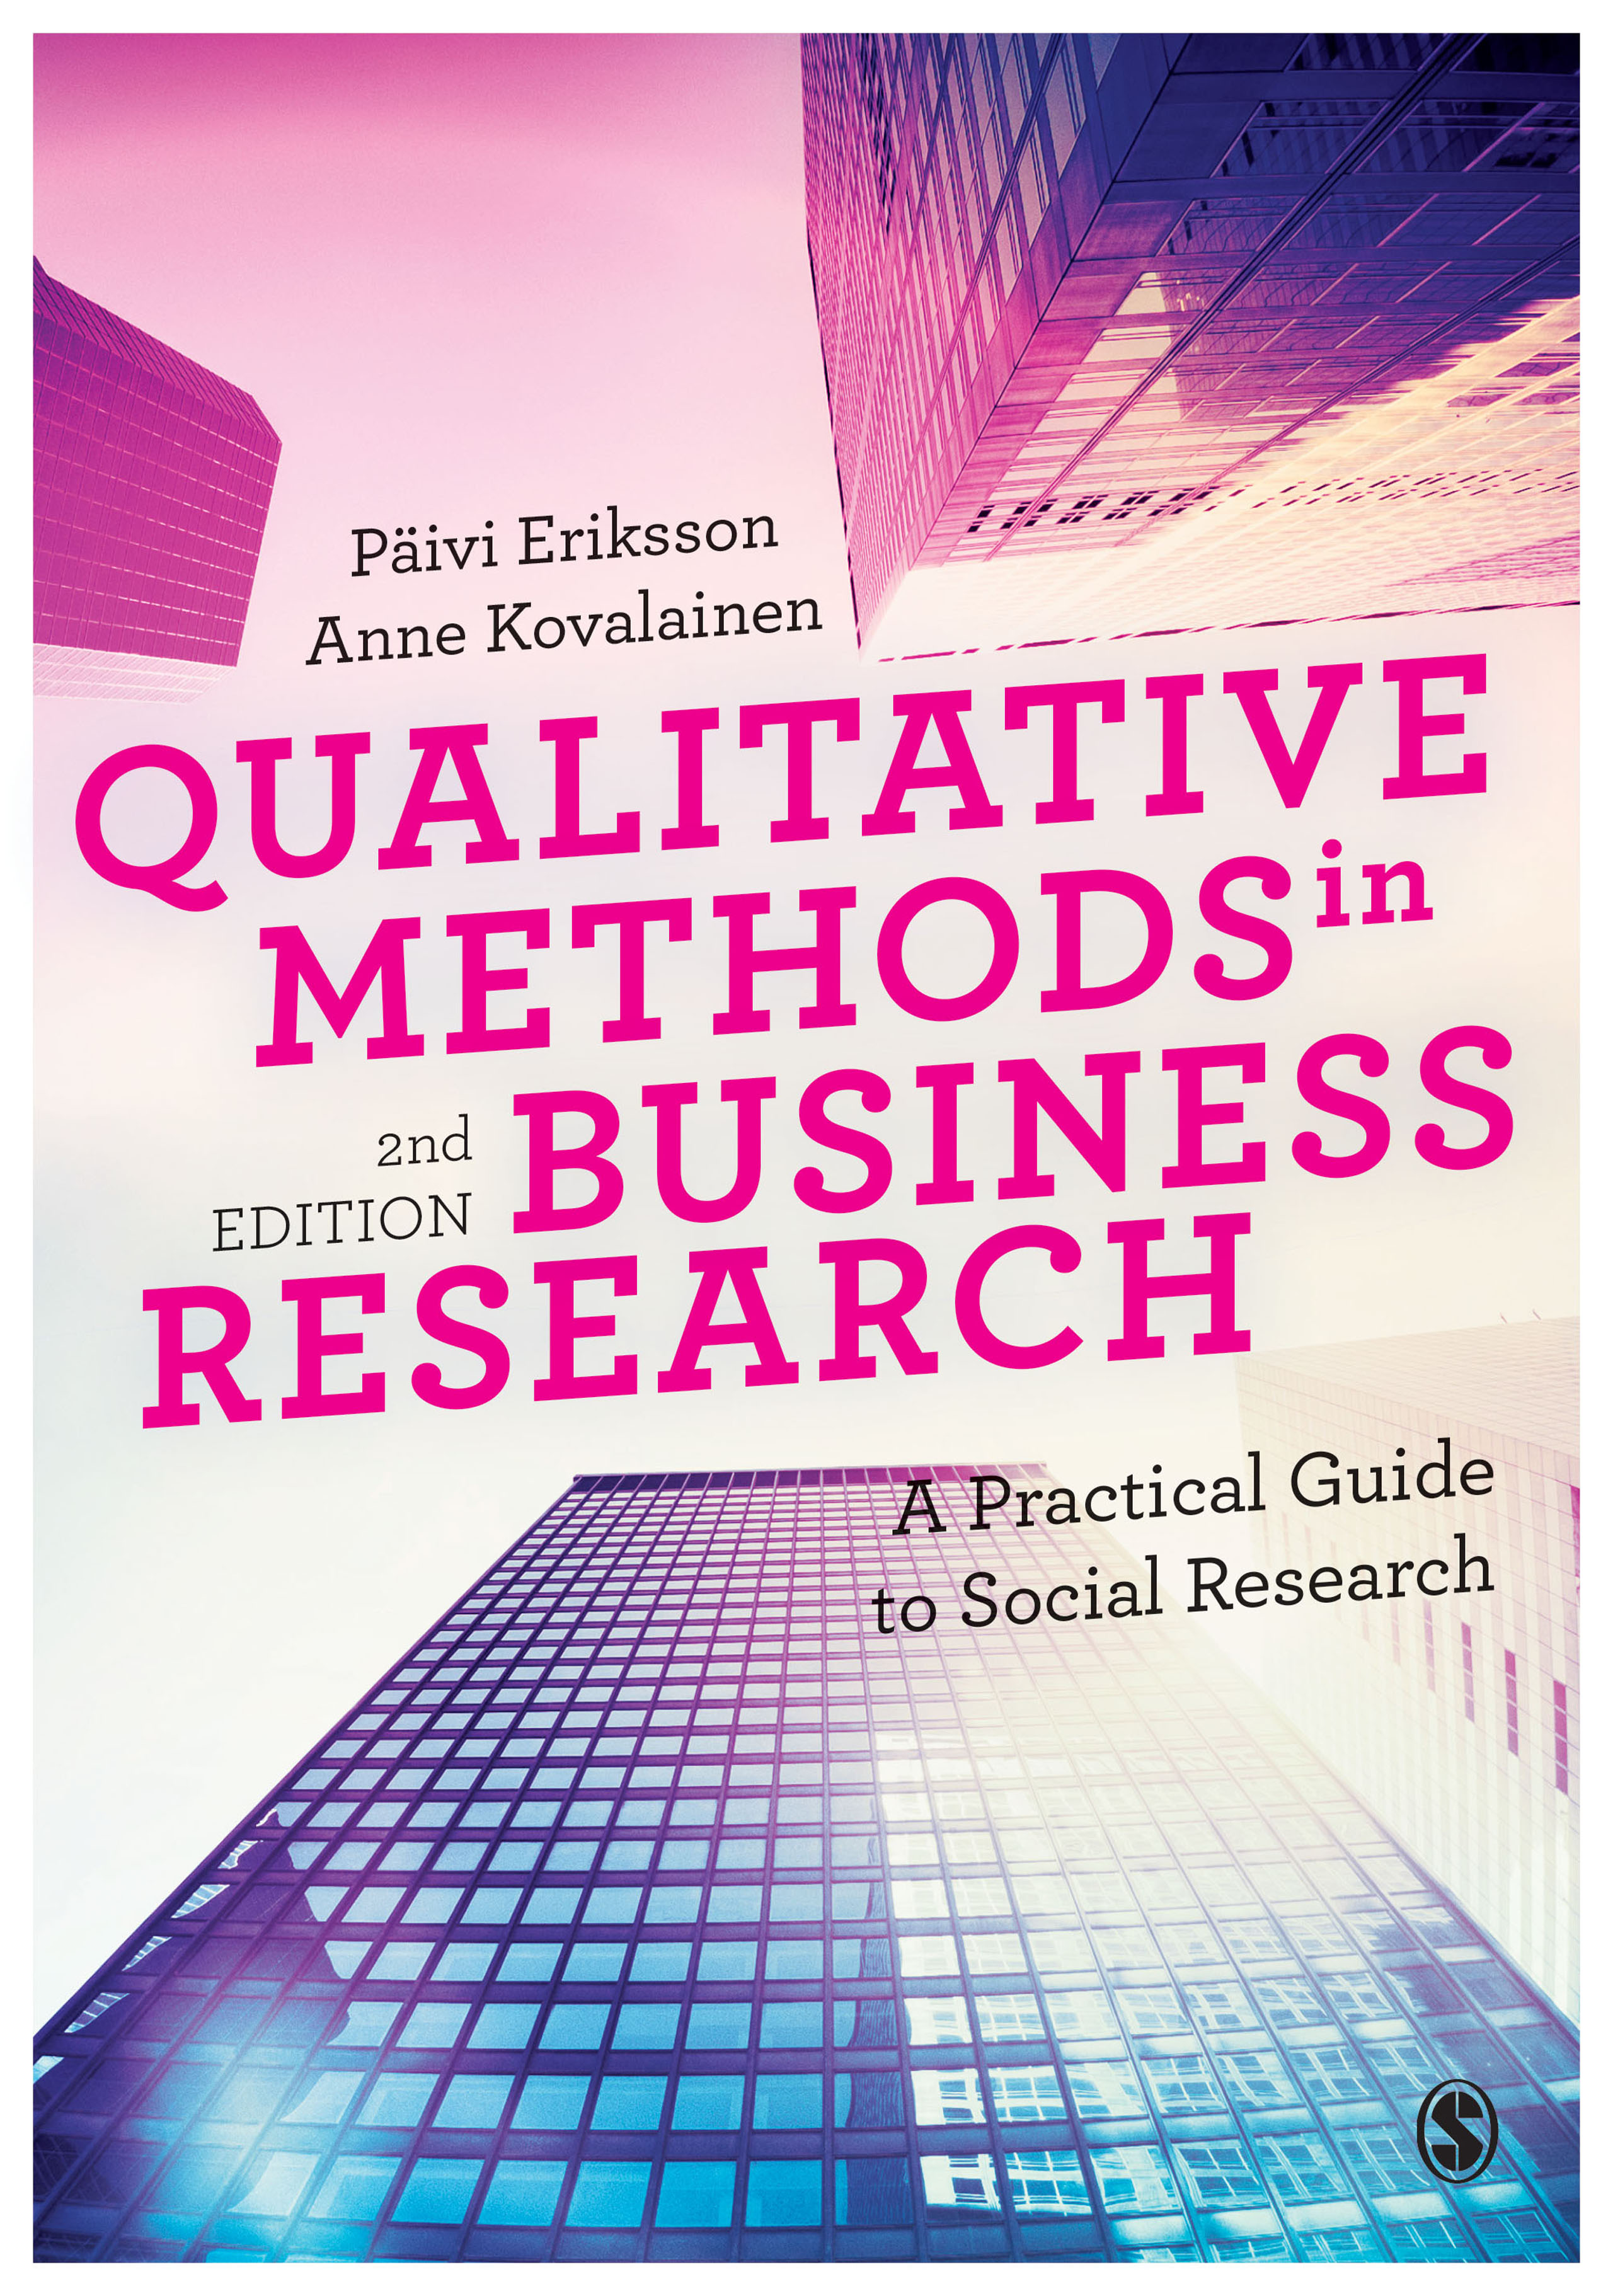 Download Ebook Qualitative Methods in Business Research (2nd ed.) by Päivi Eriksson Pdf